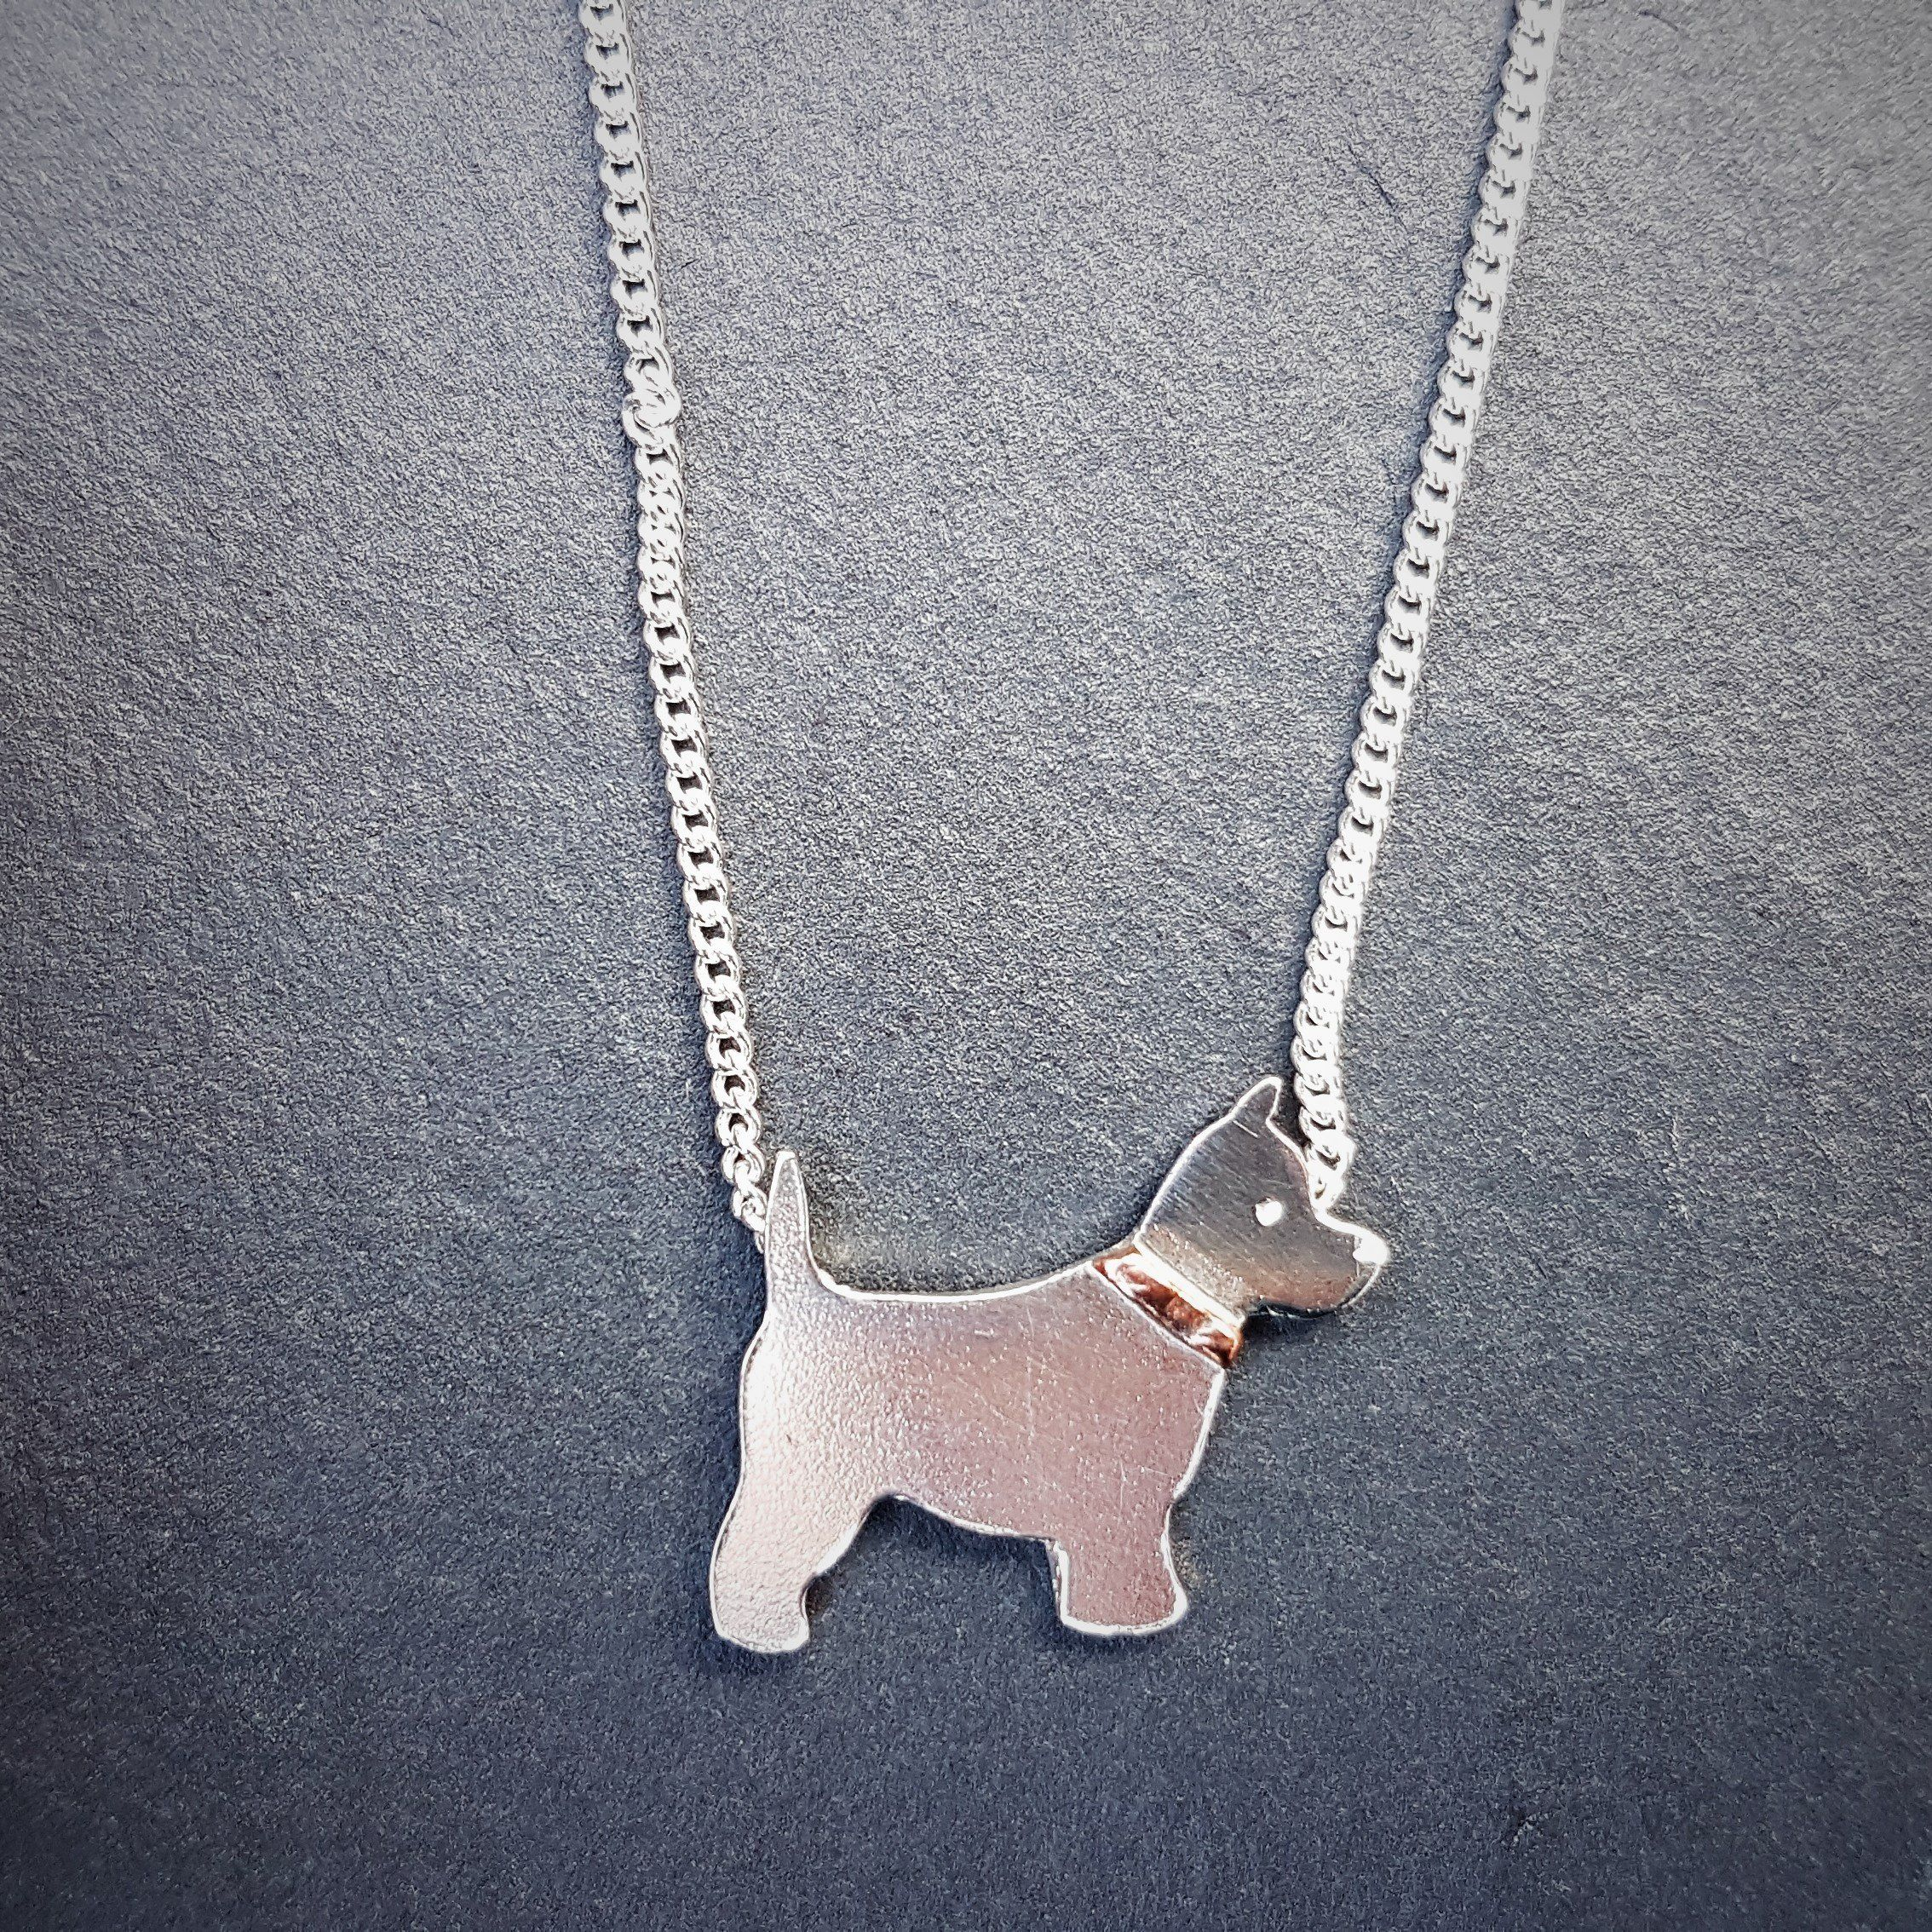 ENGLISH BULL TERRIER Pendant Necklace Collectable with 18 inch Chain Silver